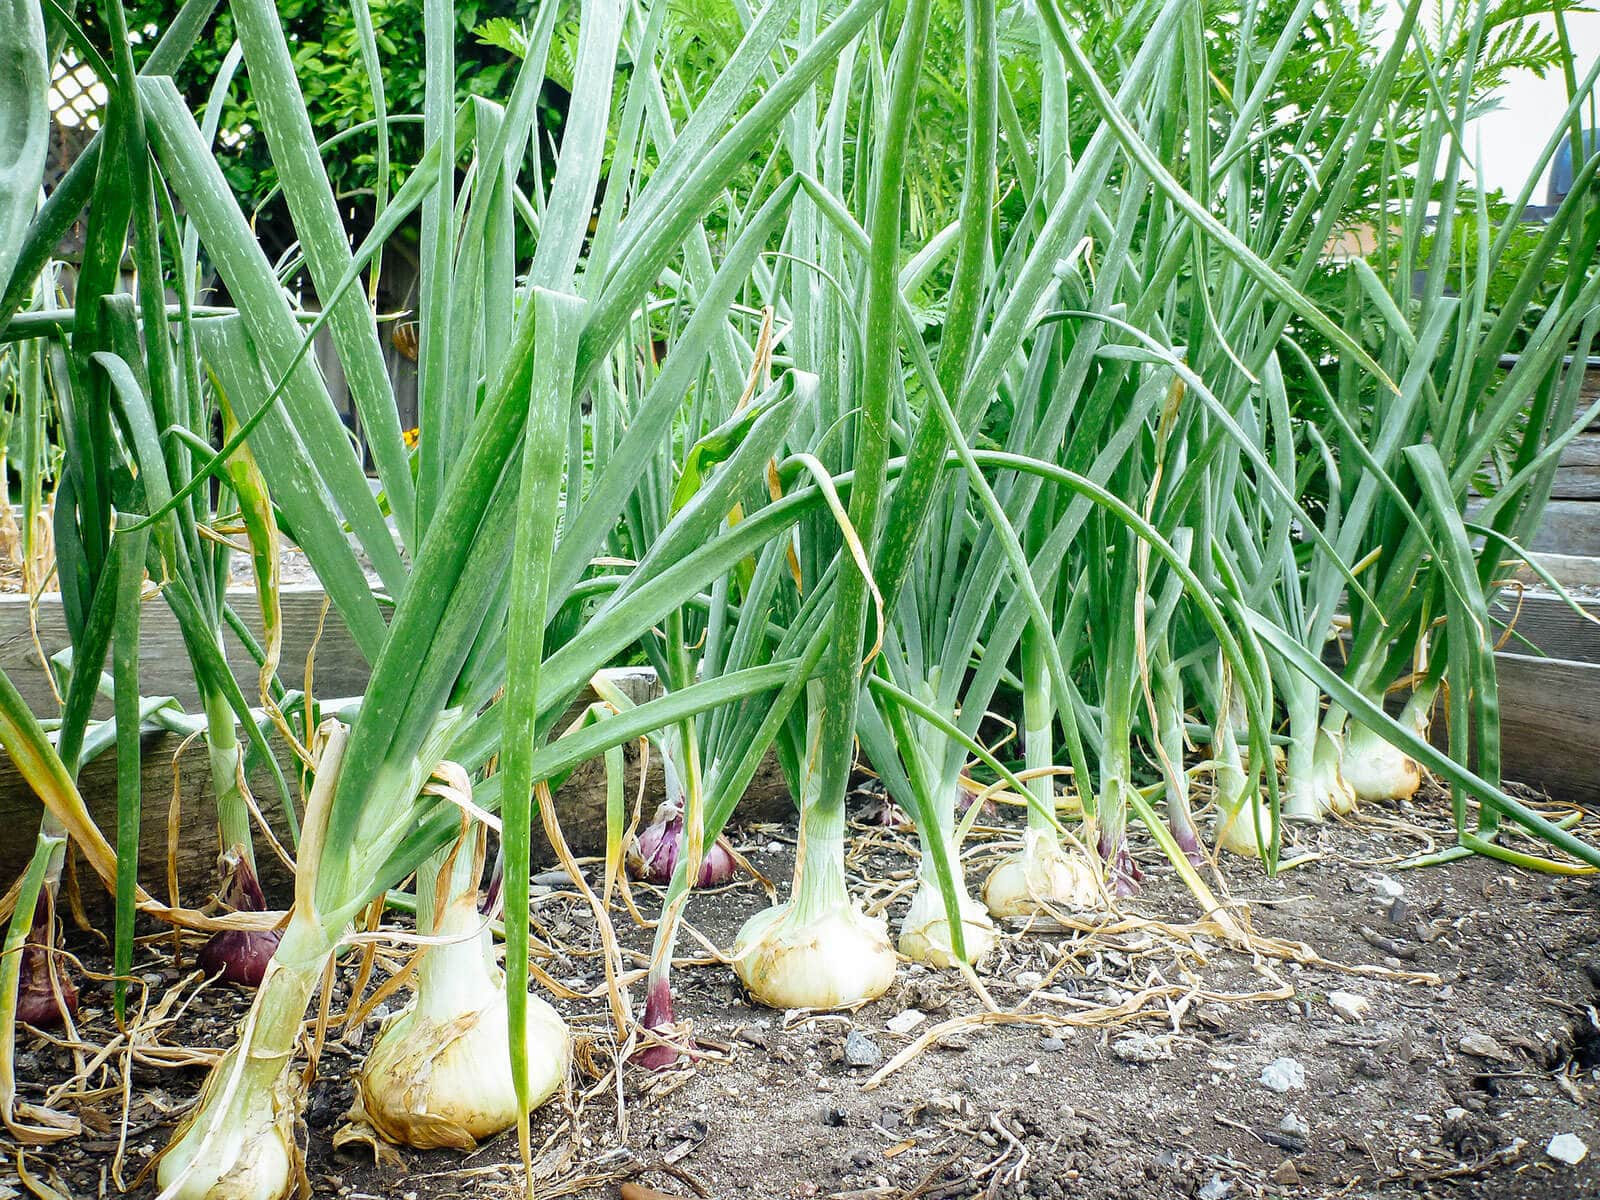 Mature onion plants in a garden bed